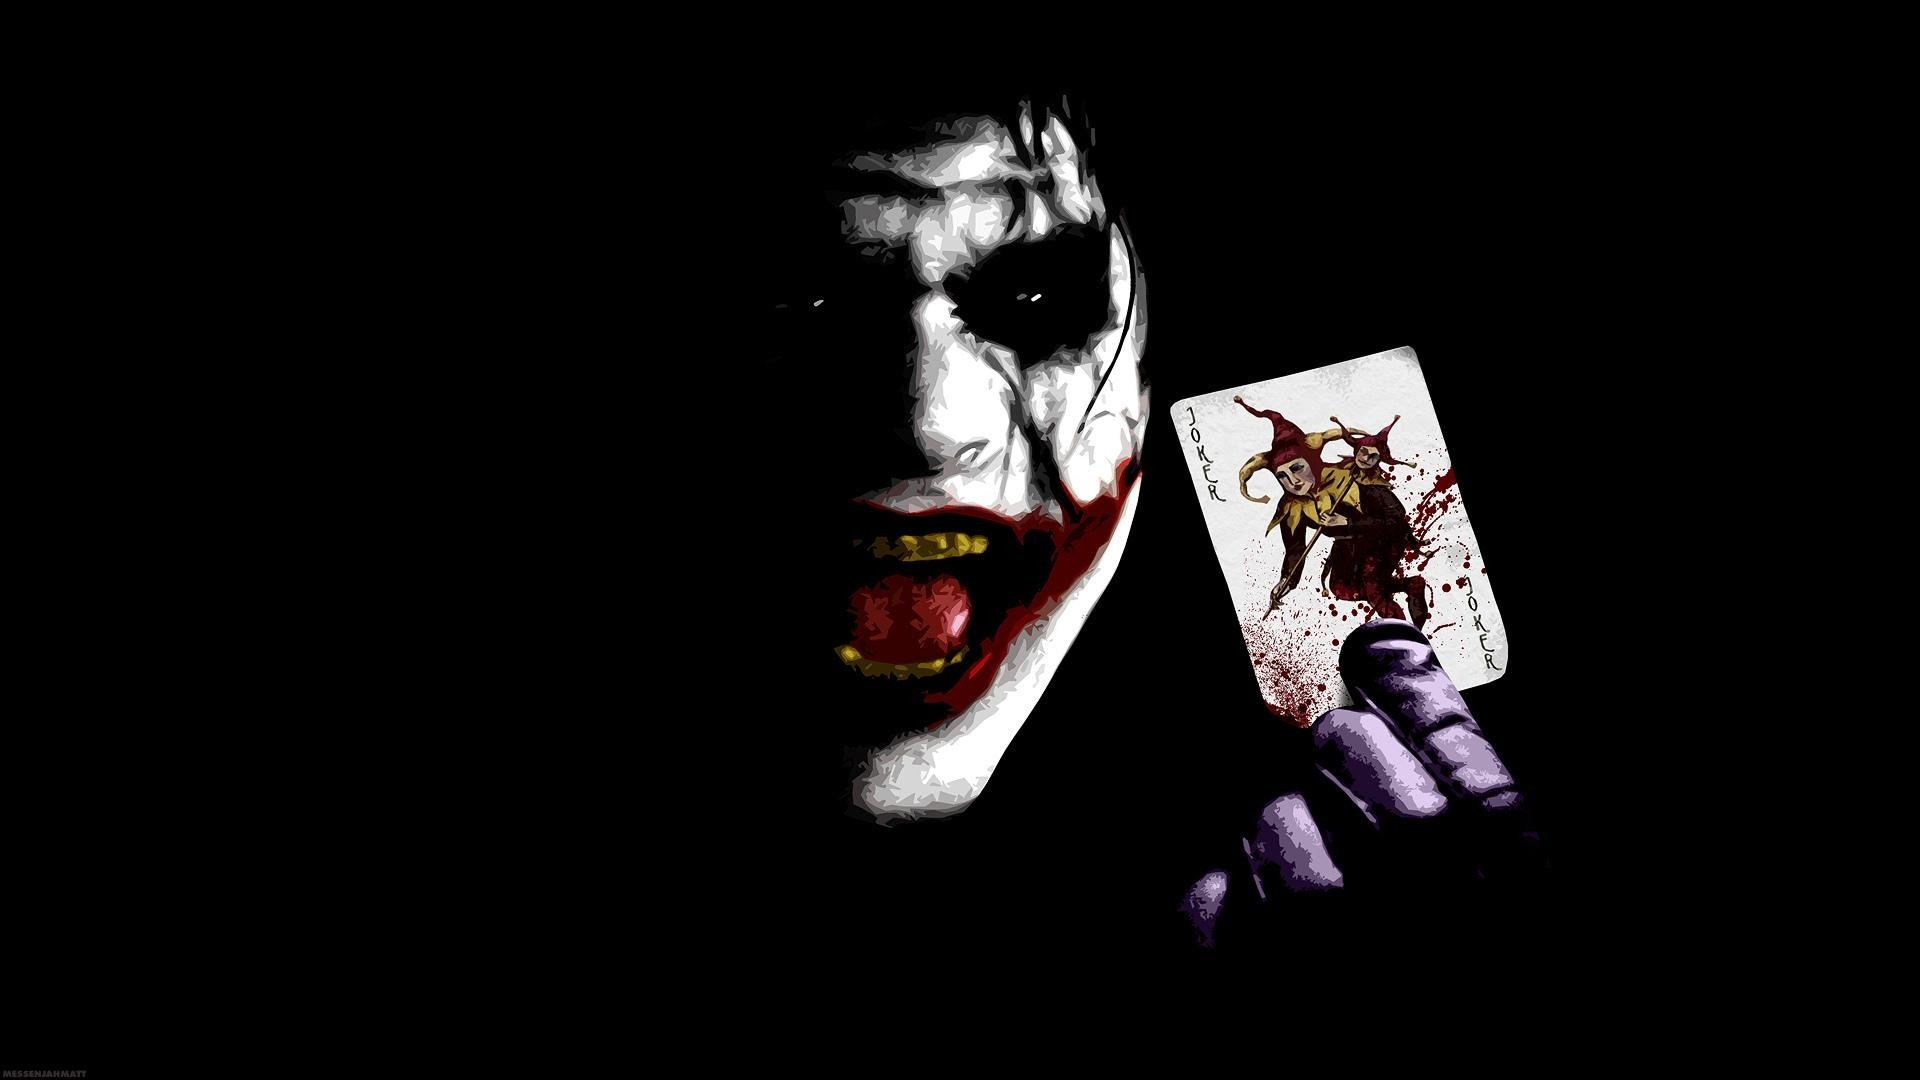 The Joker Wallpapers Pictures Images 1920x1080